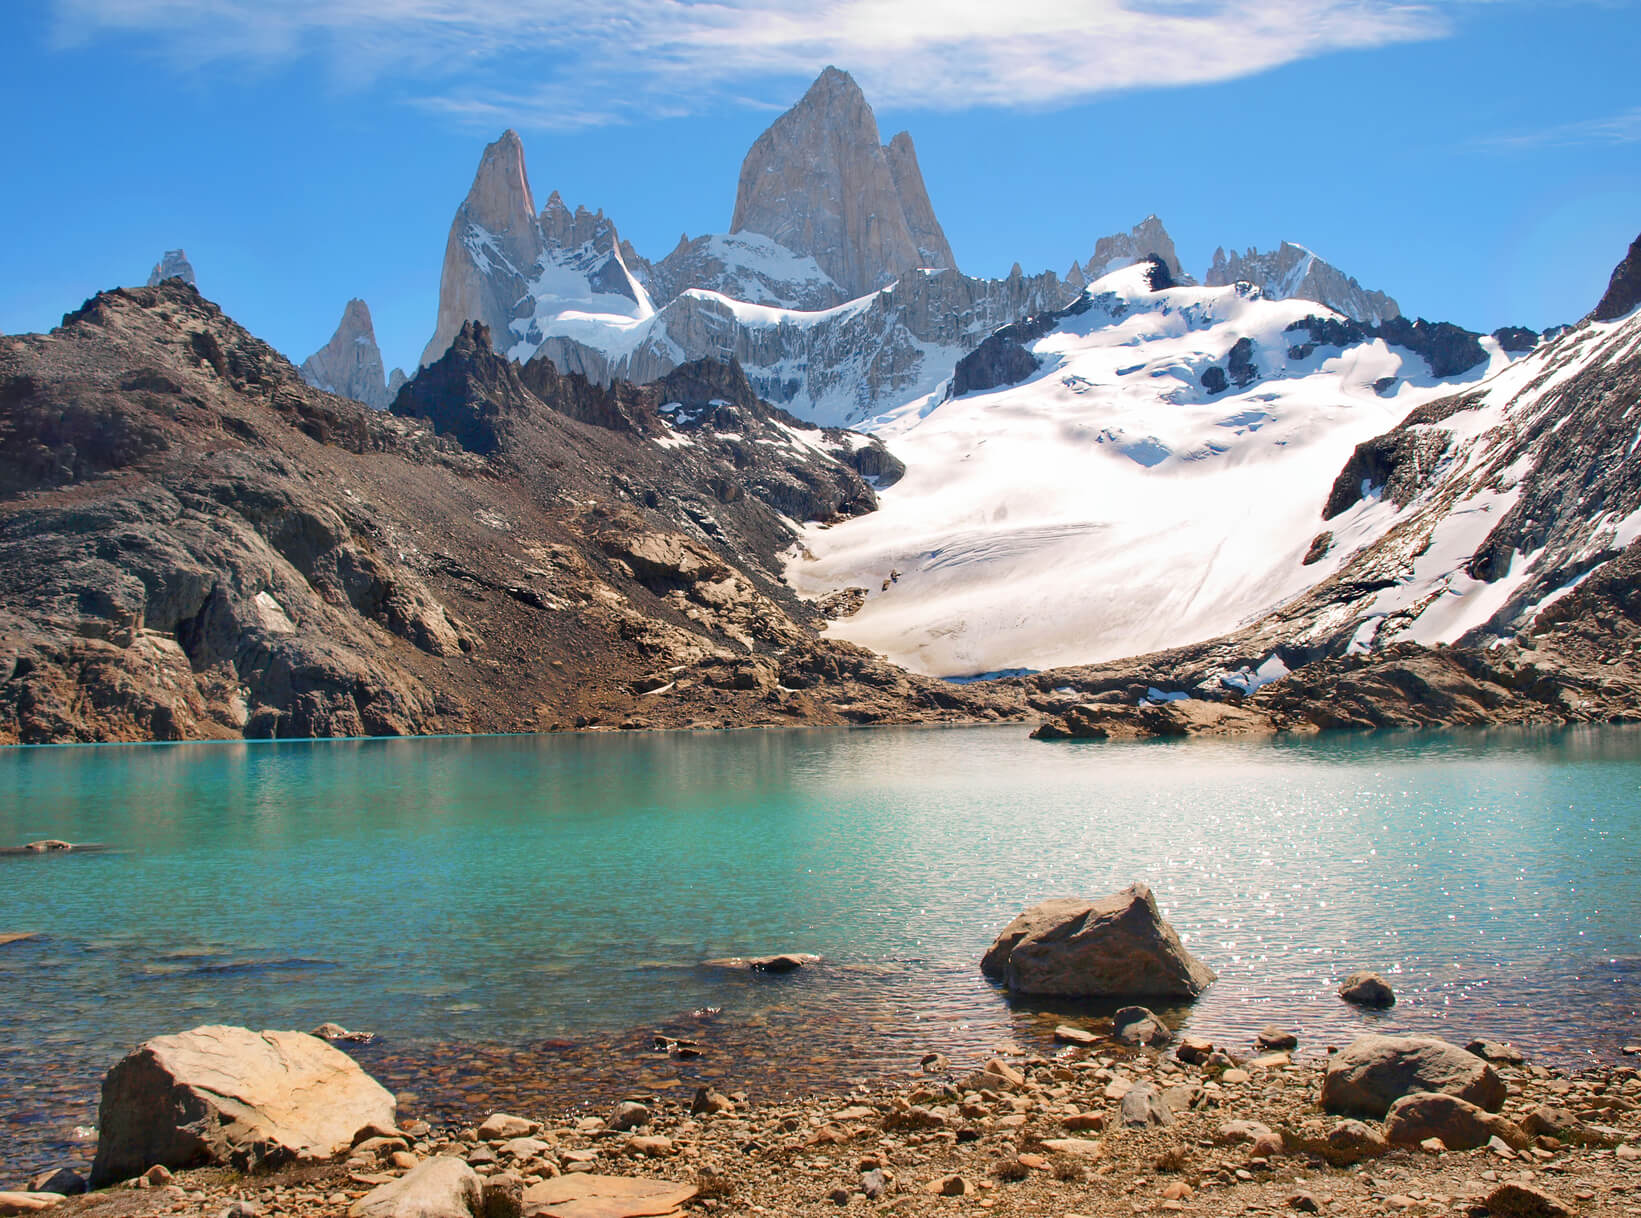 **EXPIRED** ERROR FARE: New York to Buenos Aires, Argentina for only $227 roundtrip